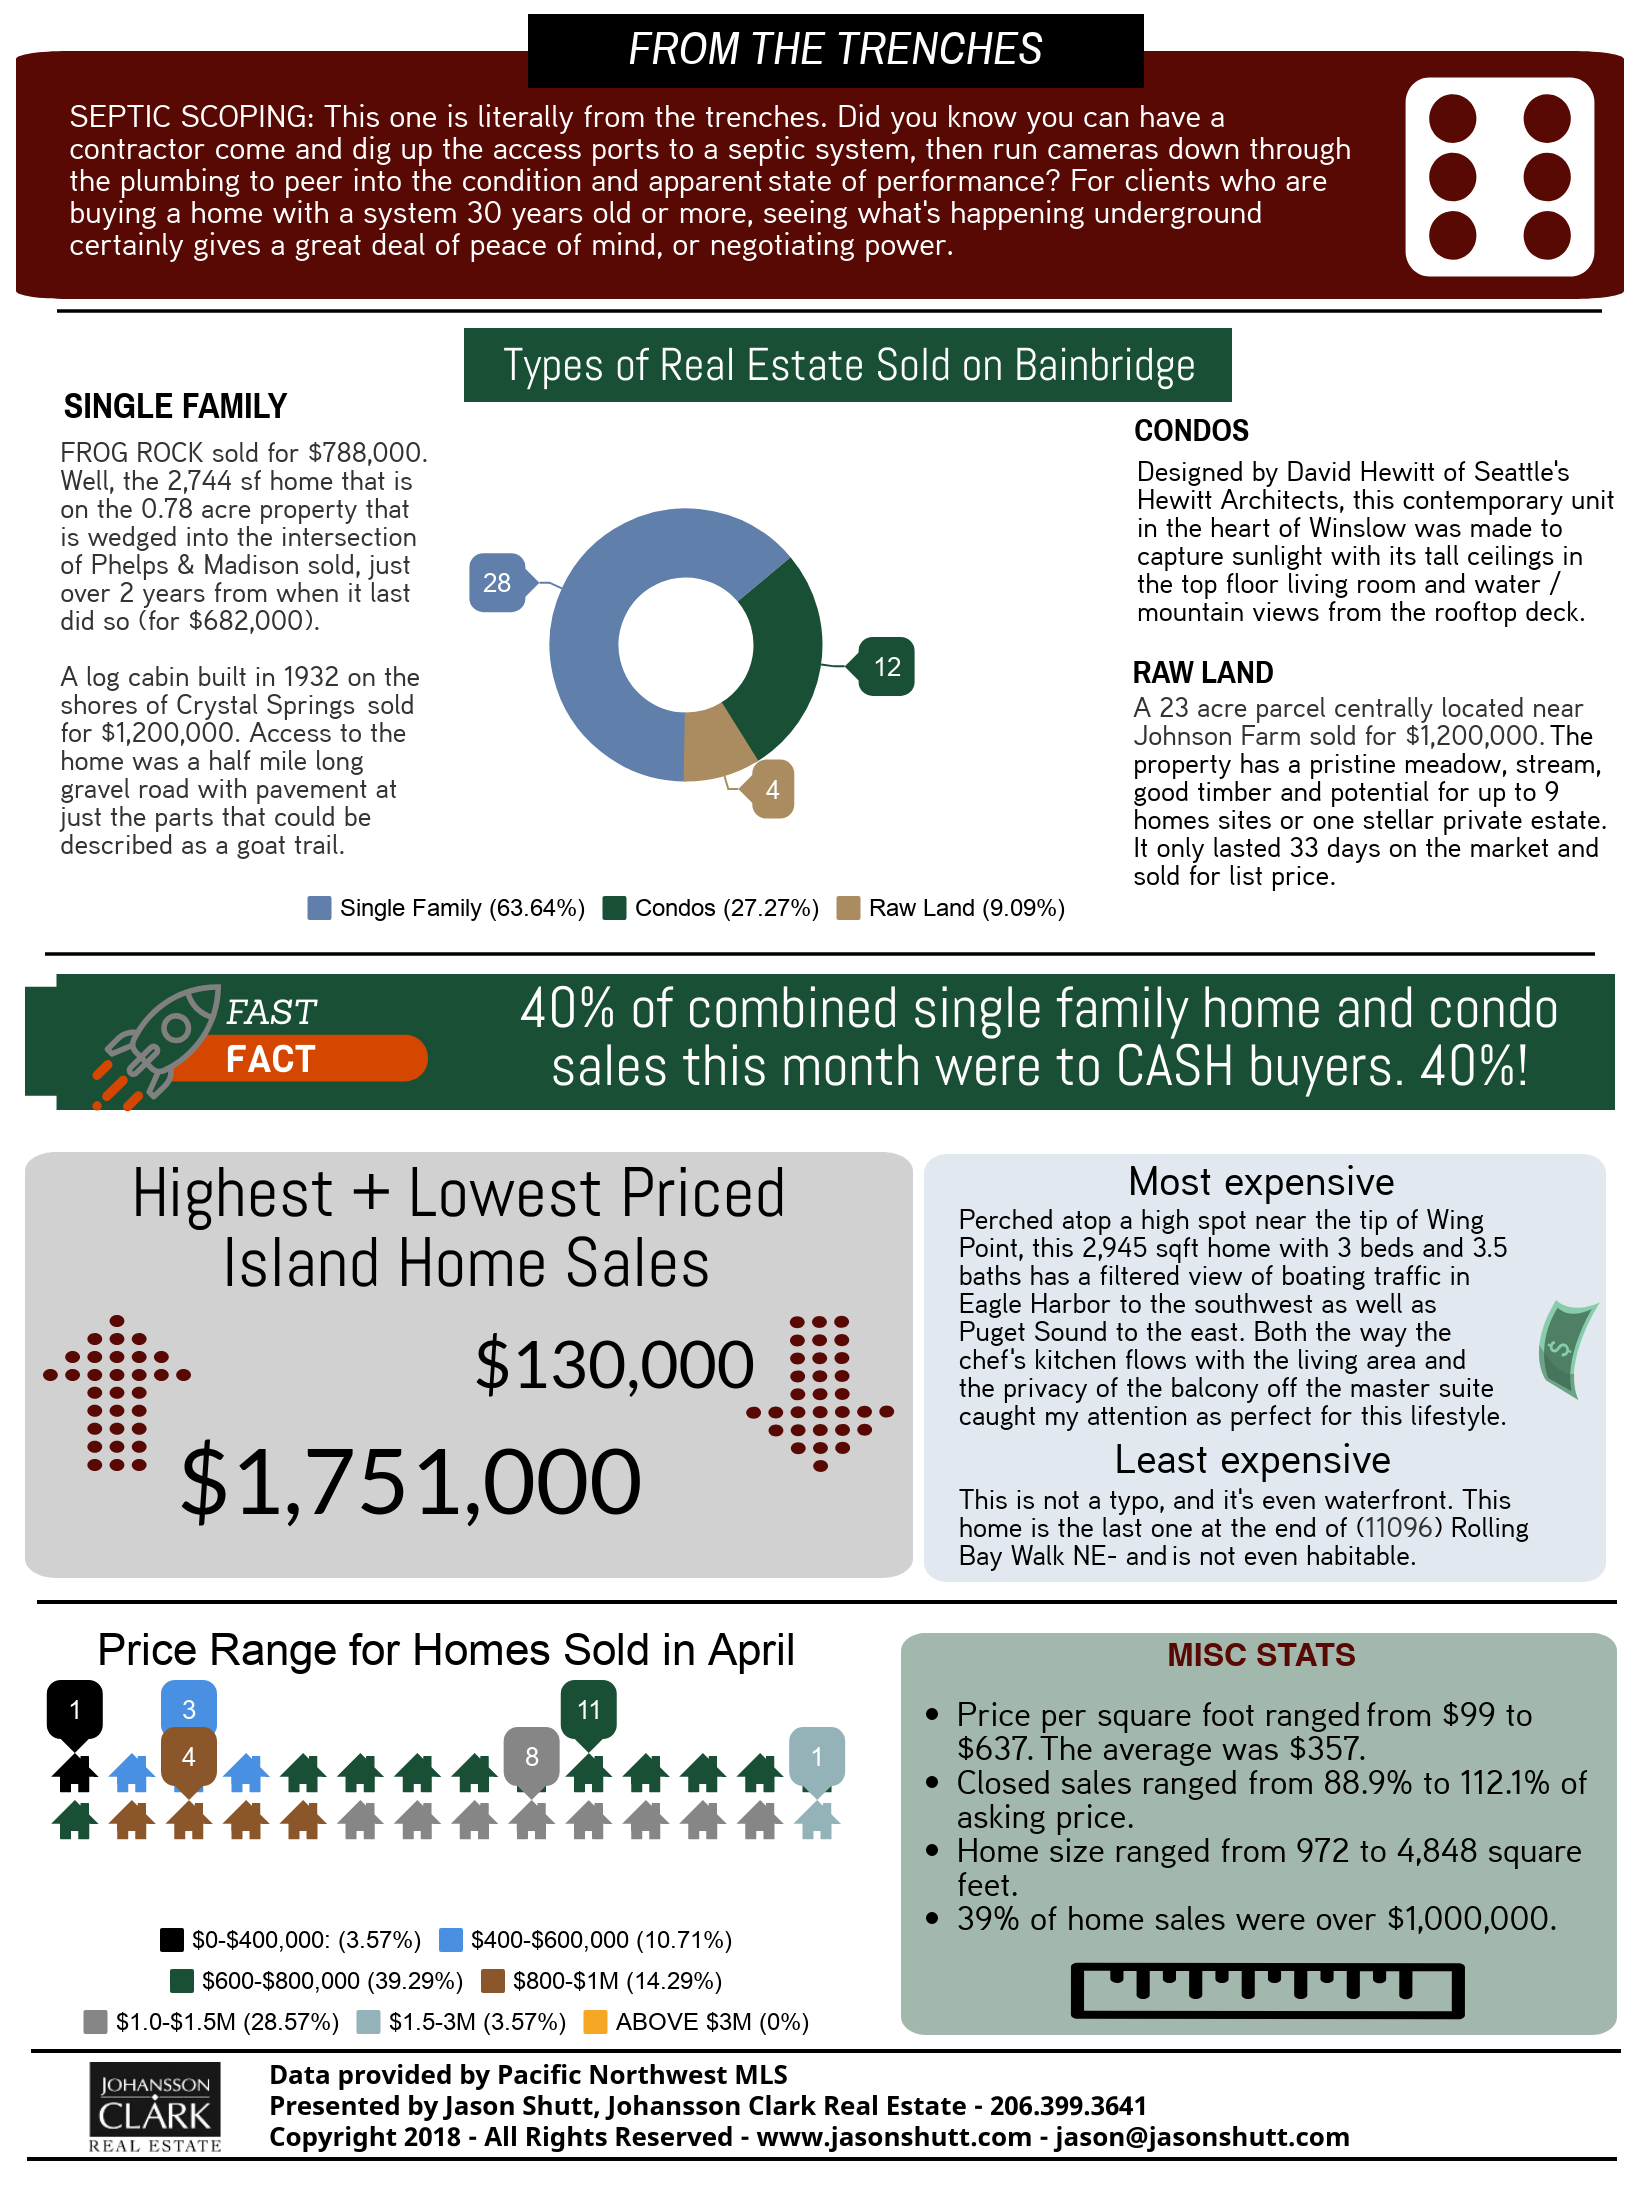 99-Second Infographic: Bainbridge Island Real Estate Market Report